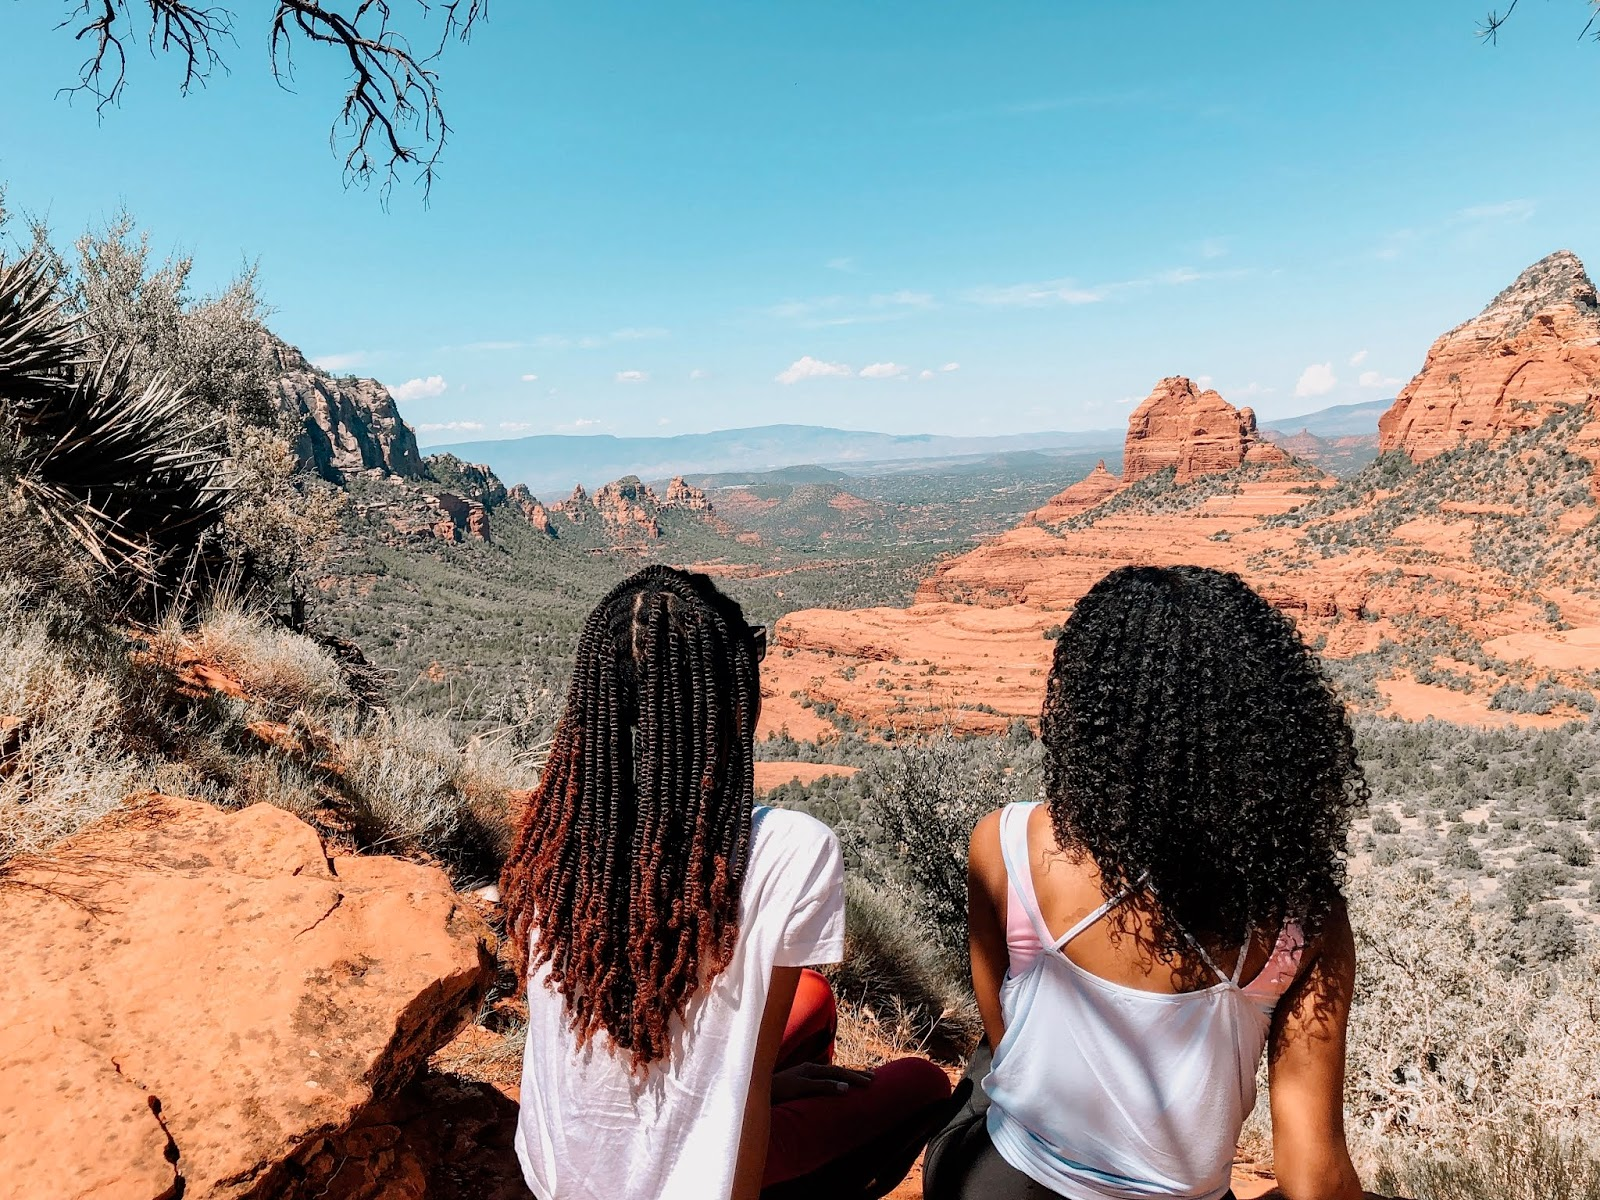 Traveling with your best friend in sedona arizona jeep tours